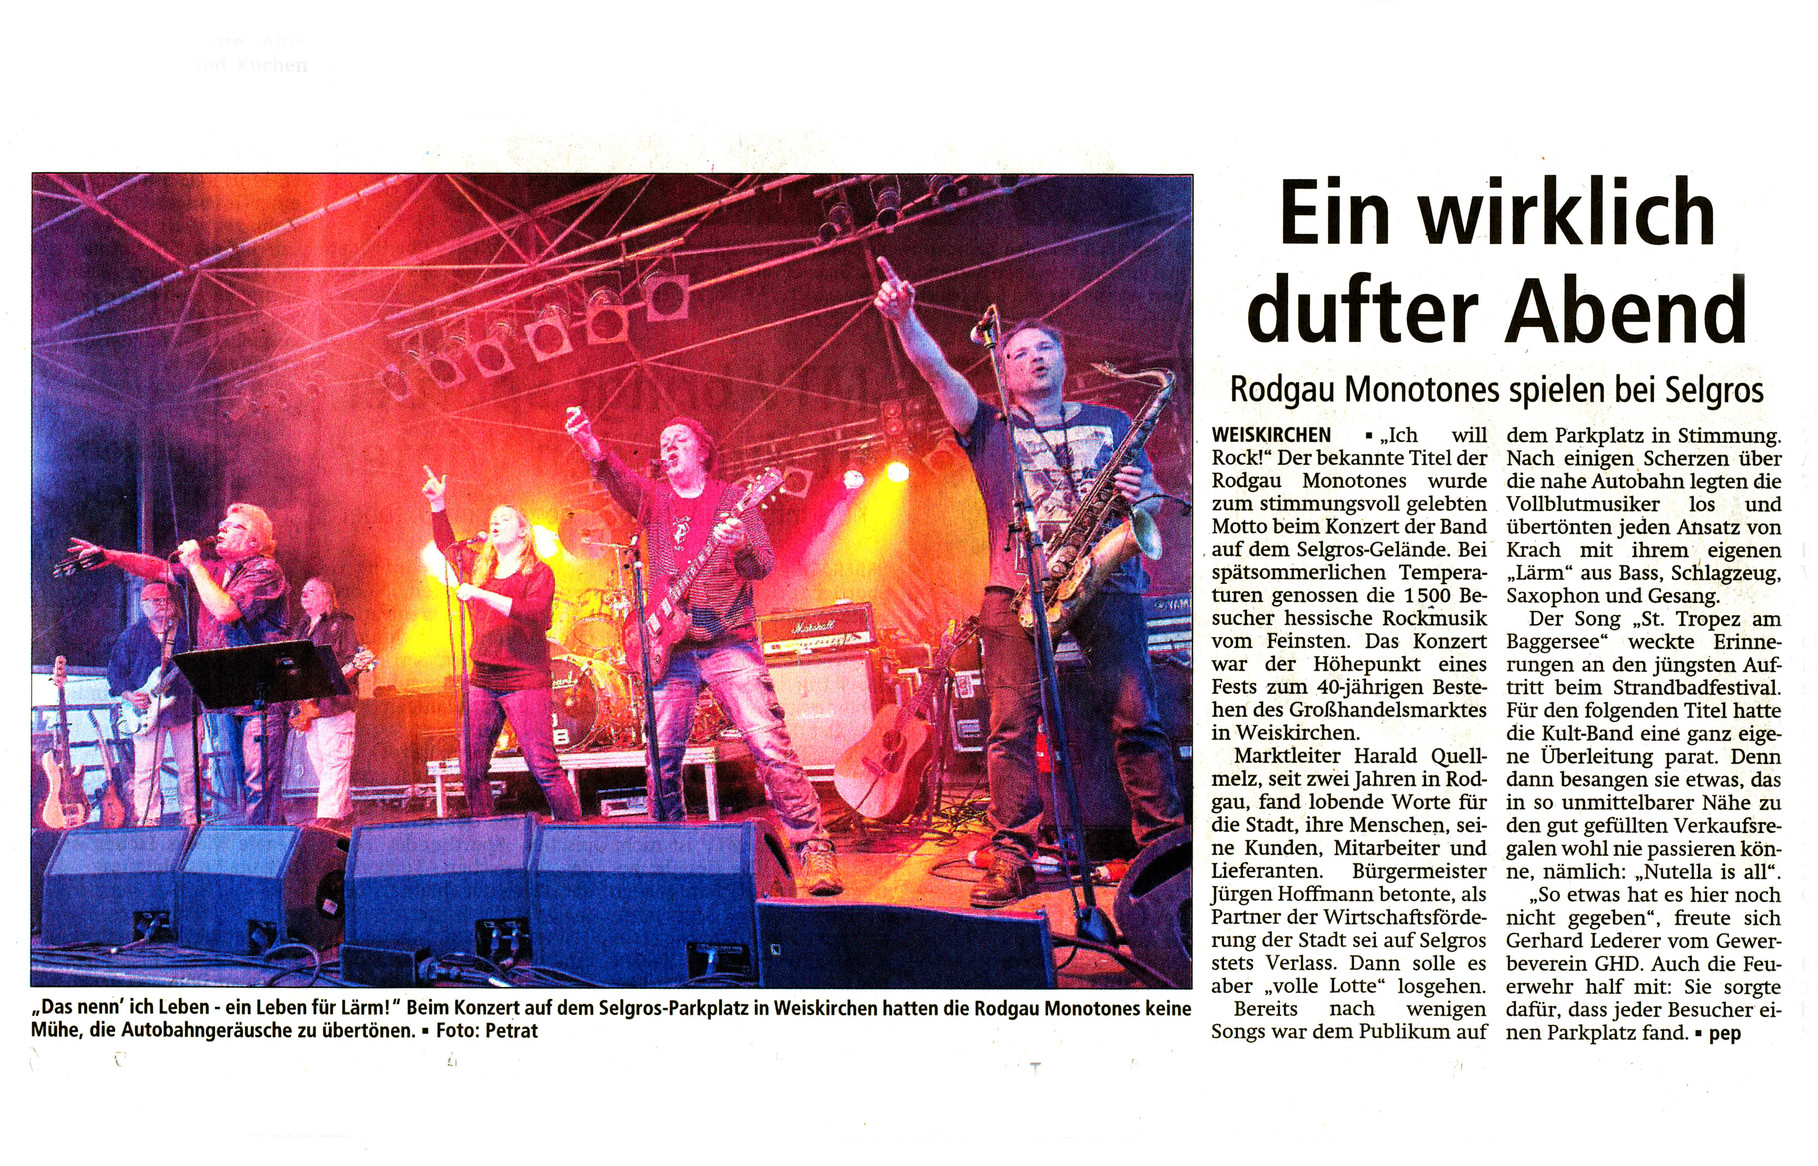 Offenbach Post, 30. September 2014